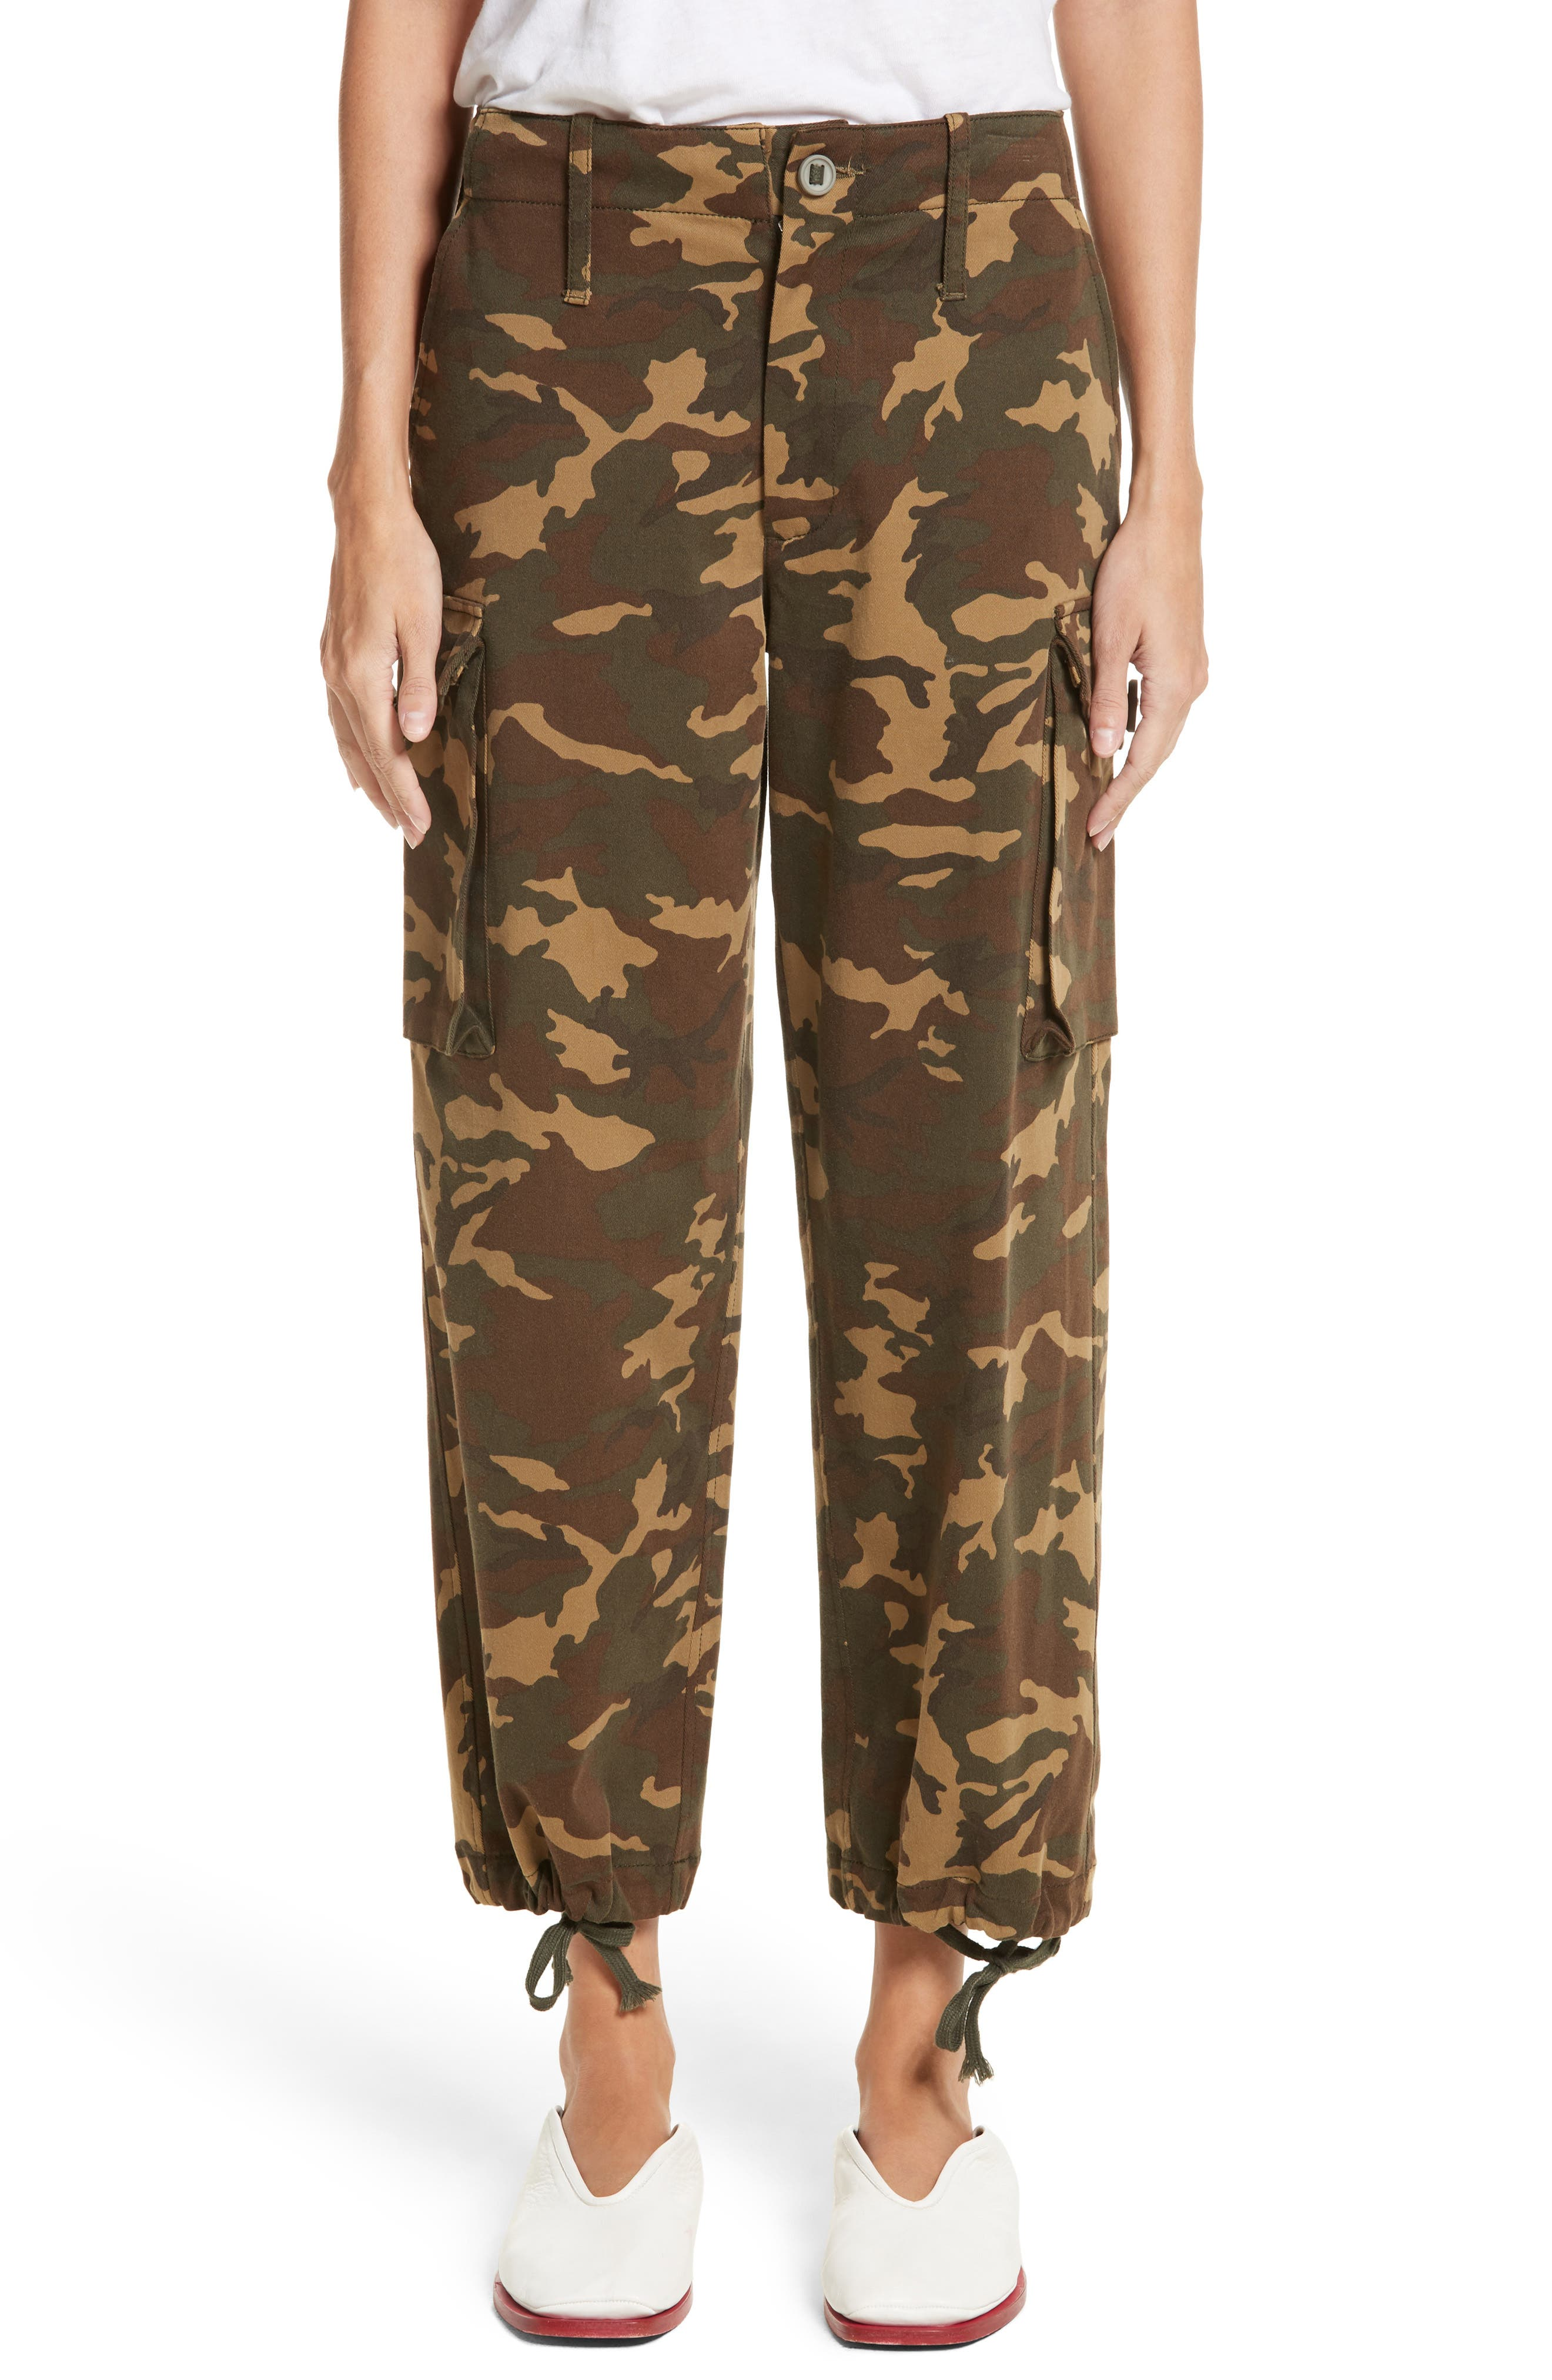 Main Image - Proenza Schouler PSWL Camouflage Stretch Cotton Pants